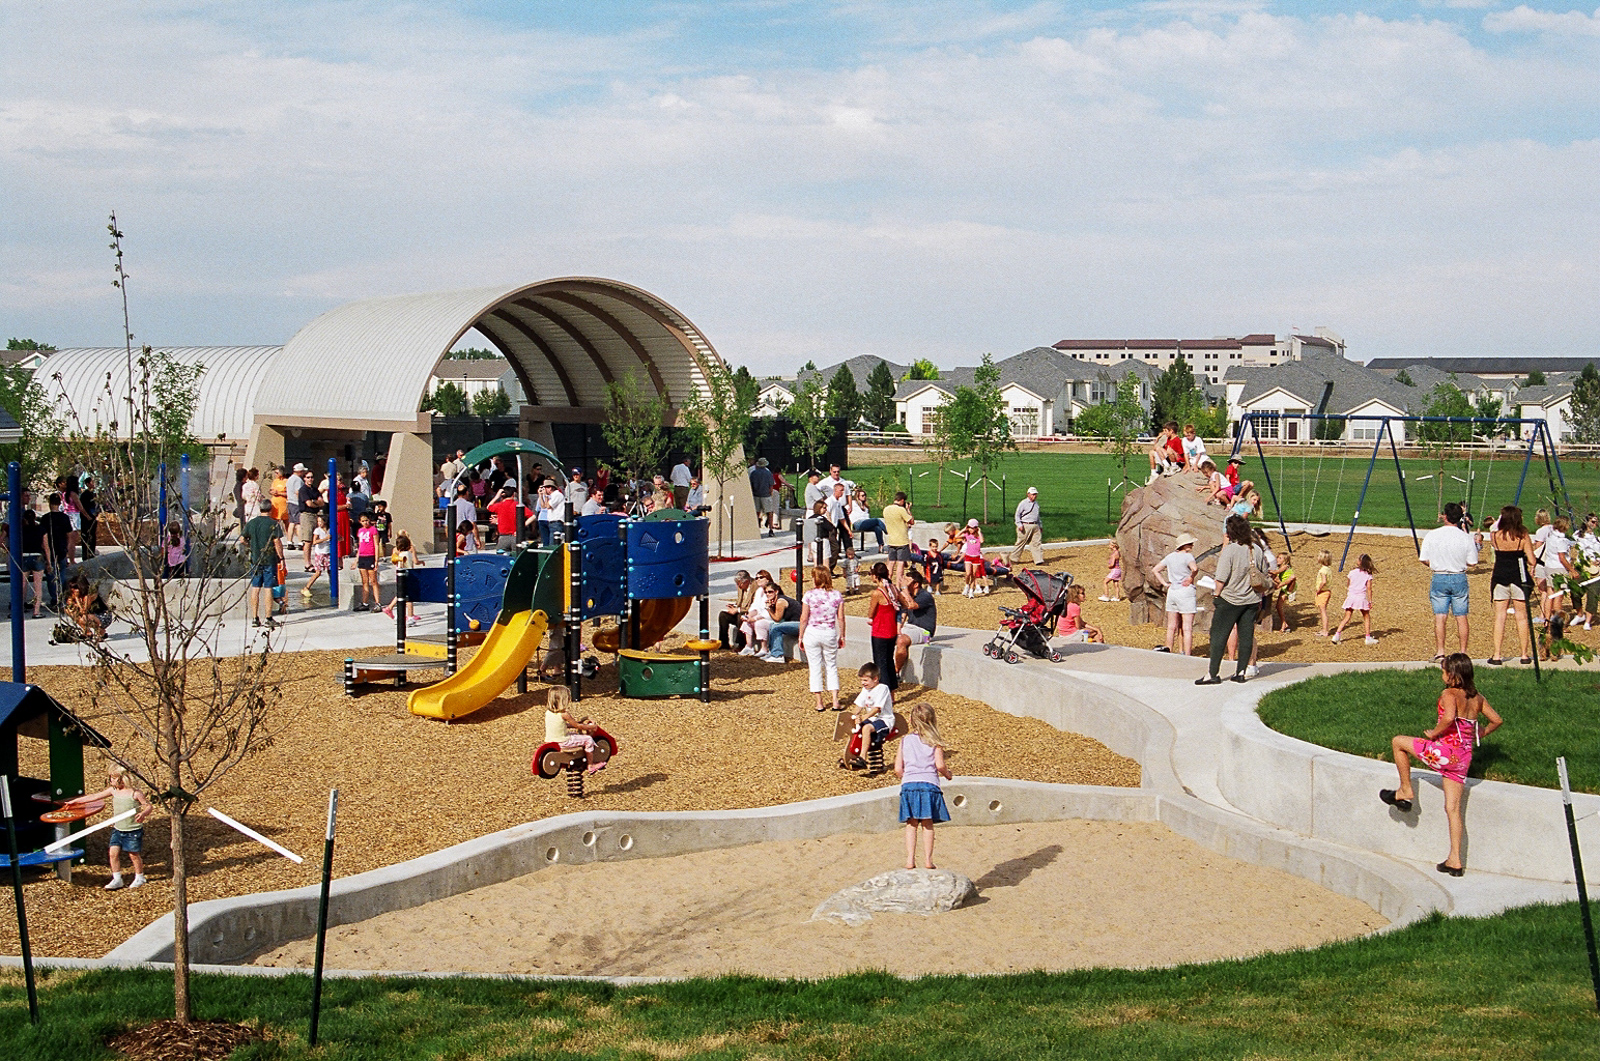 A successful example of a local playground at Whitetail Park here in Lafayette